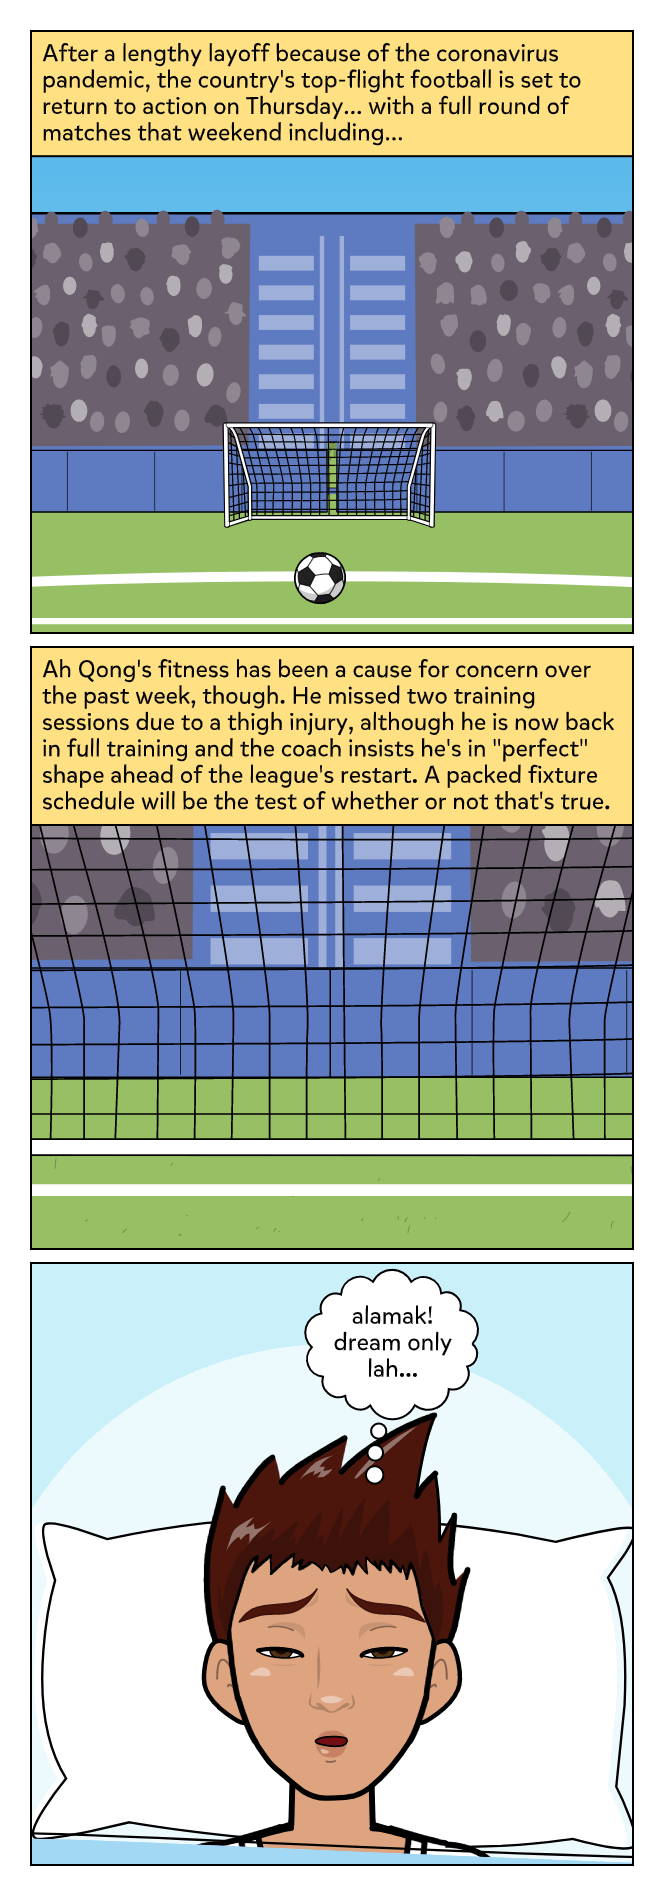 Ah Qong - The Football Fan (04)